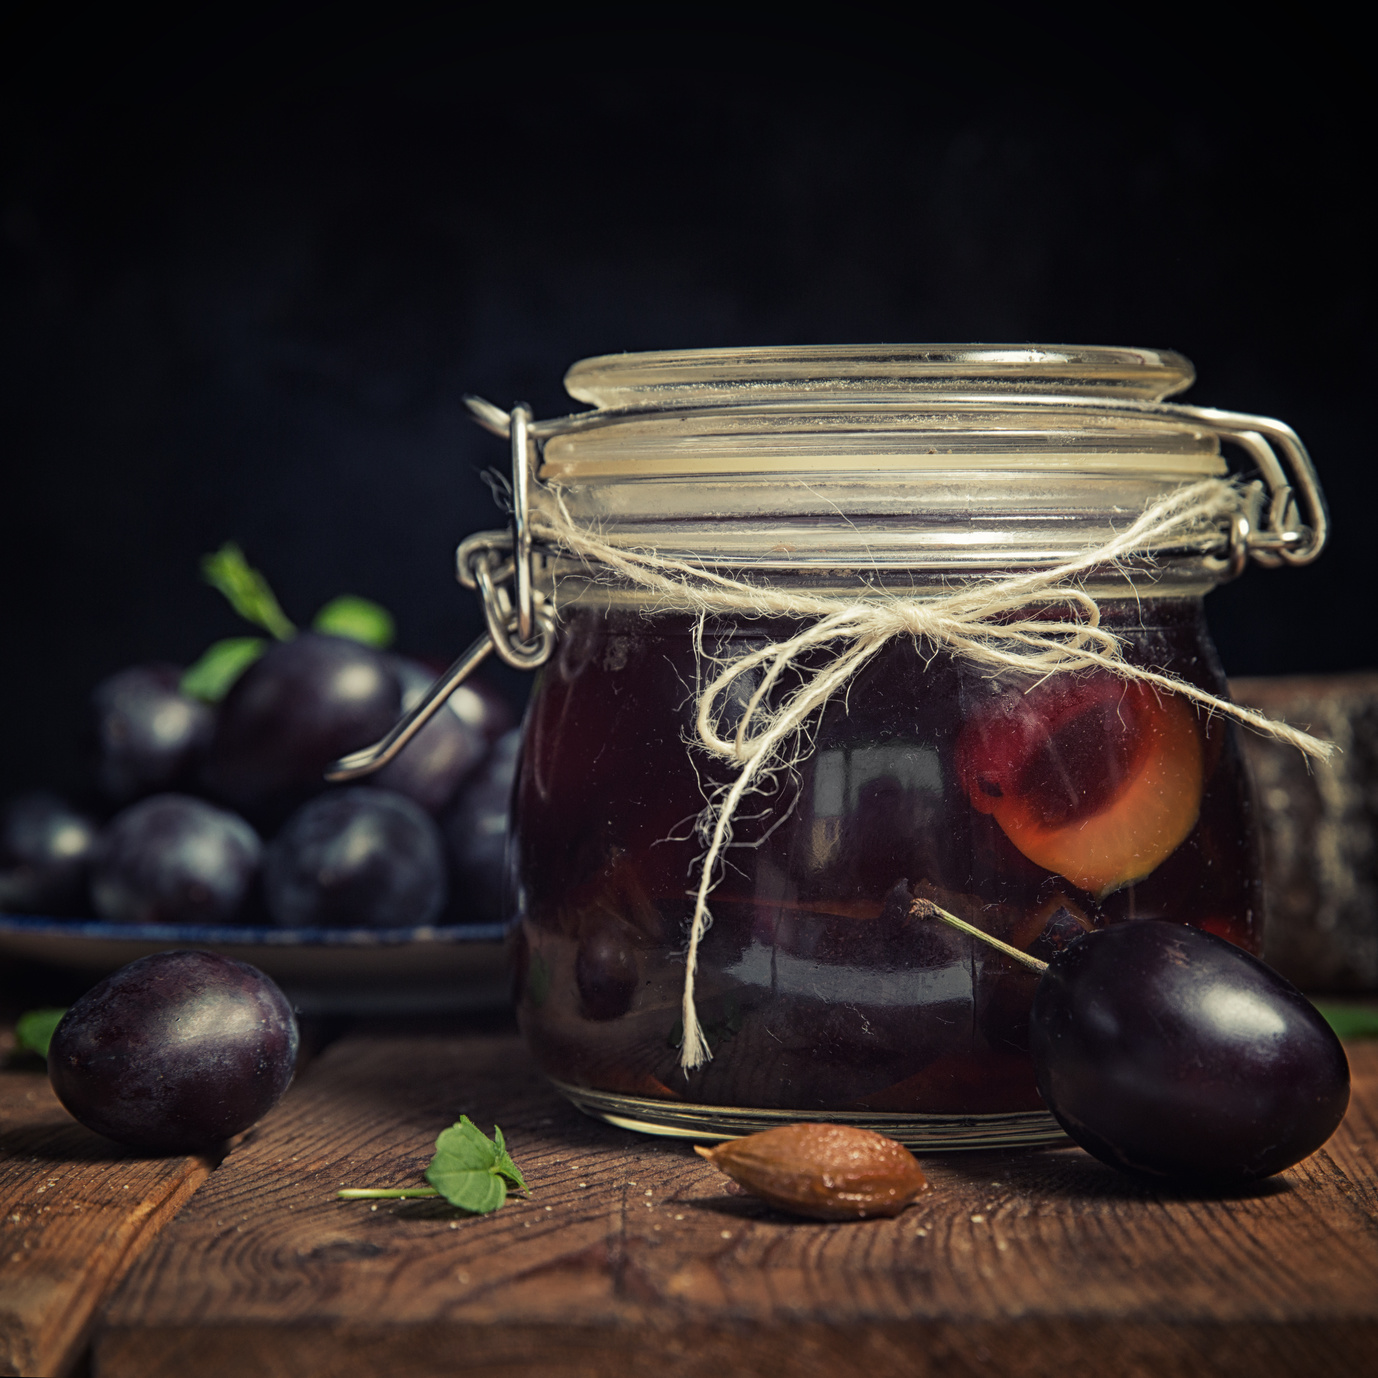 Plum compote in jar